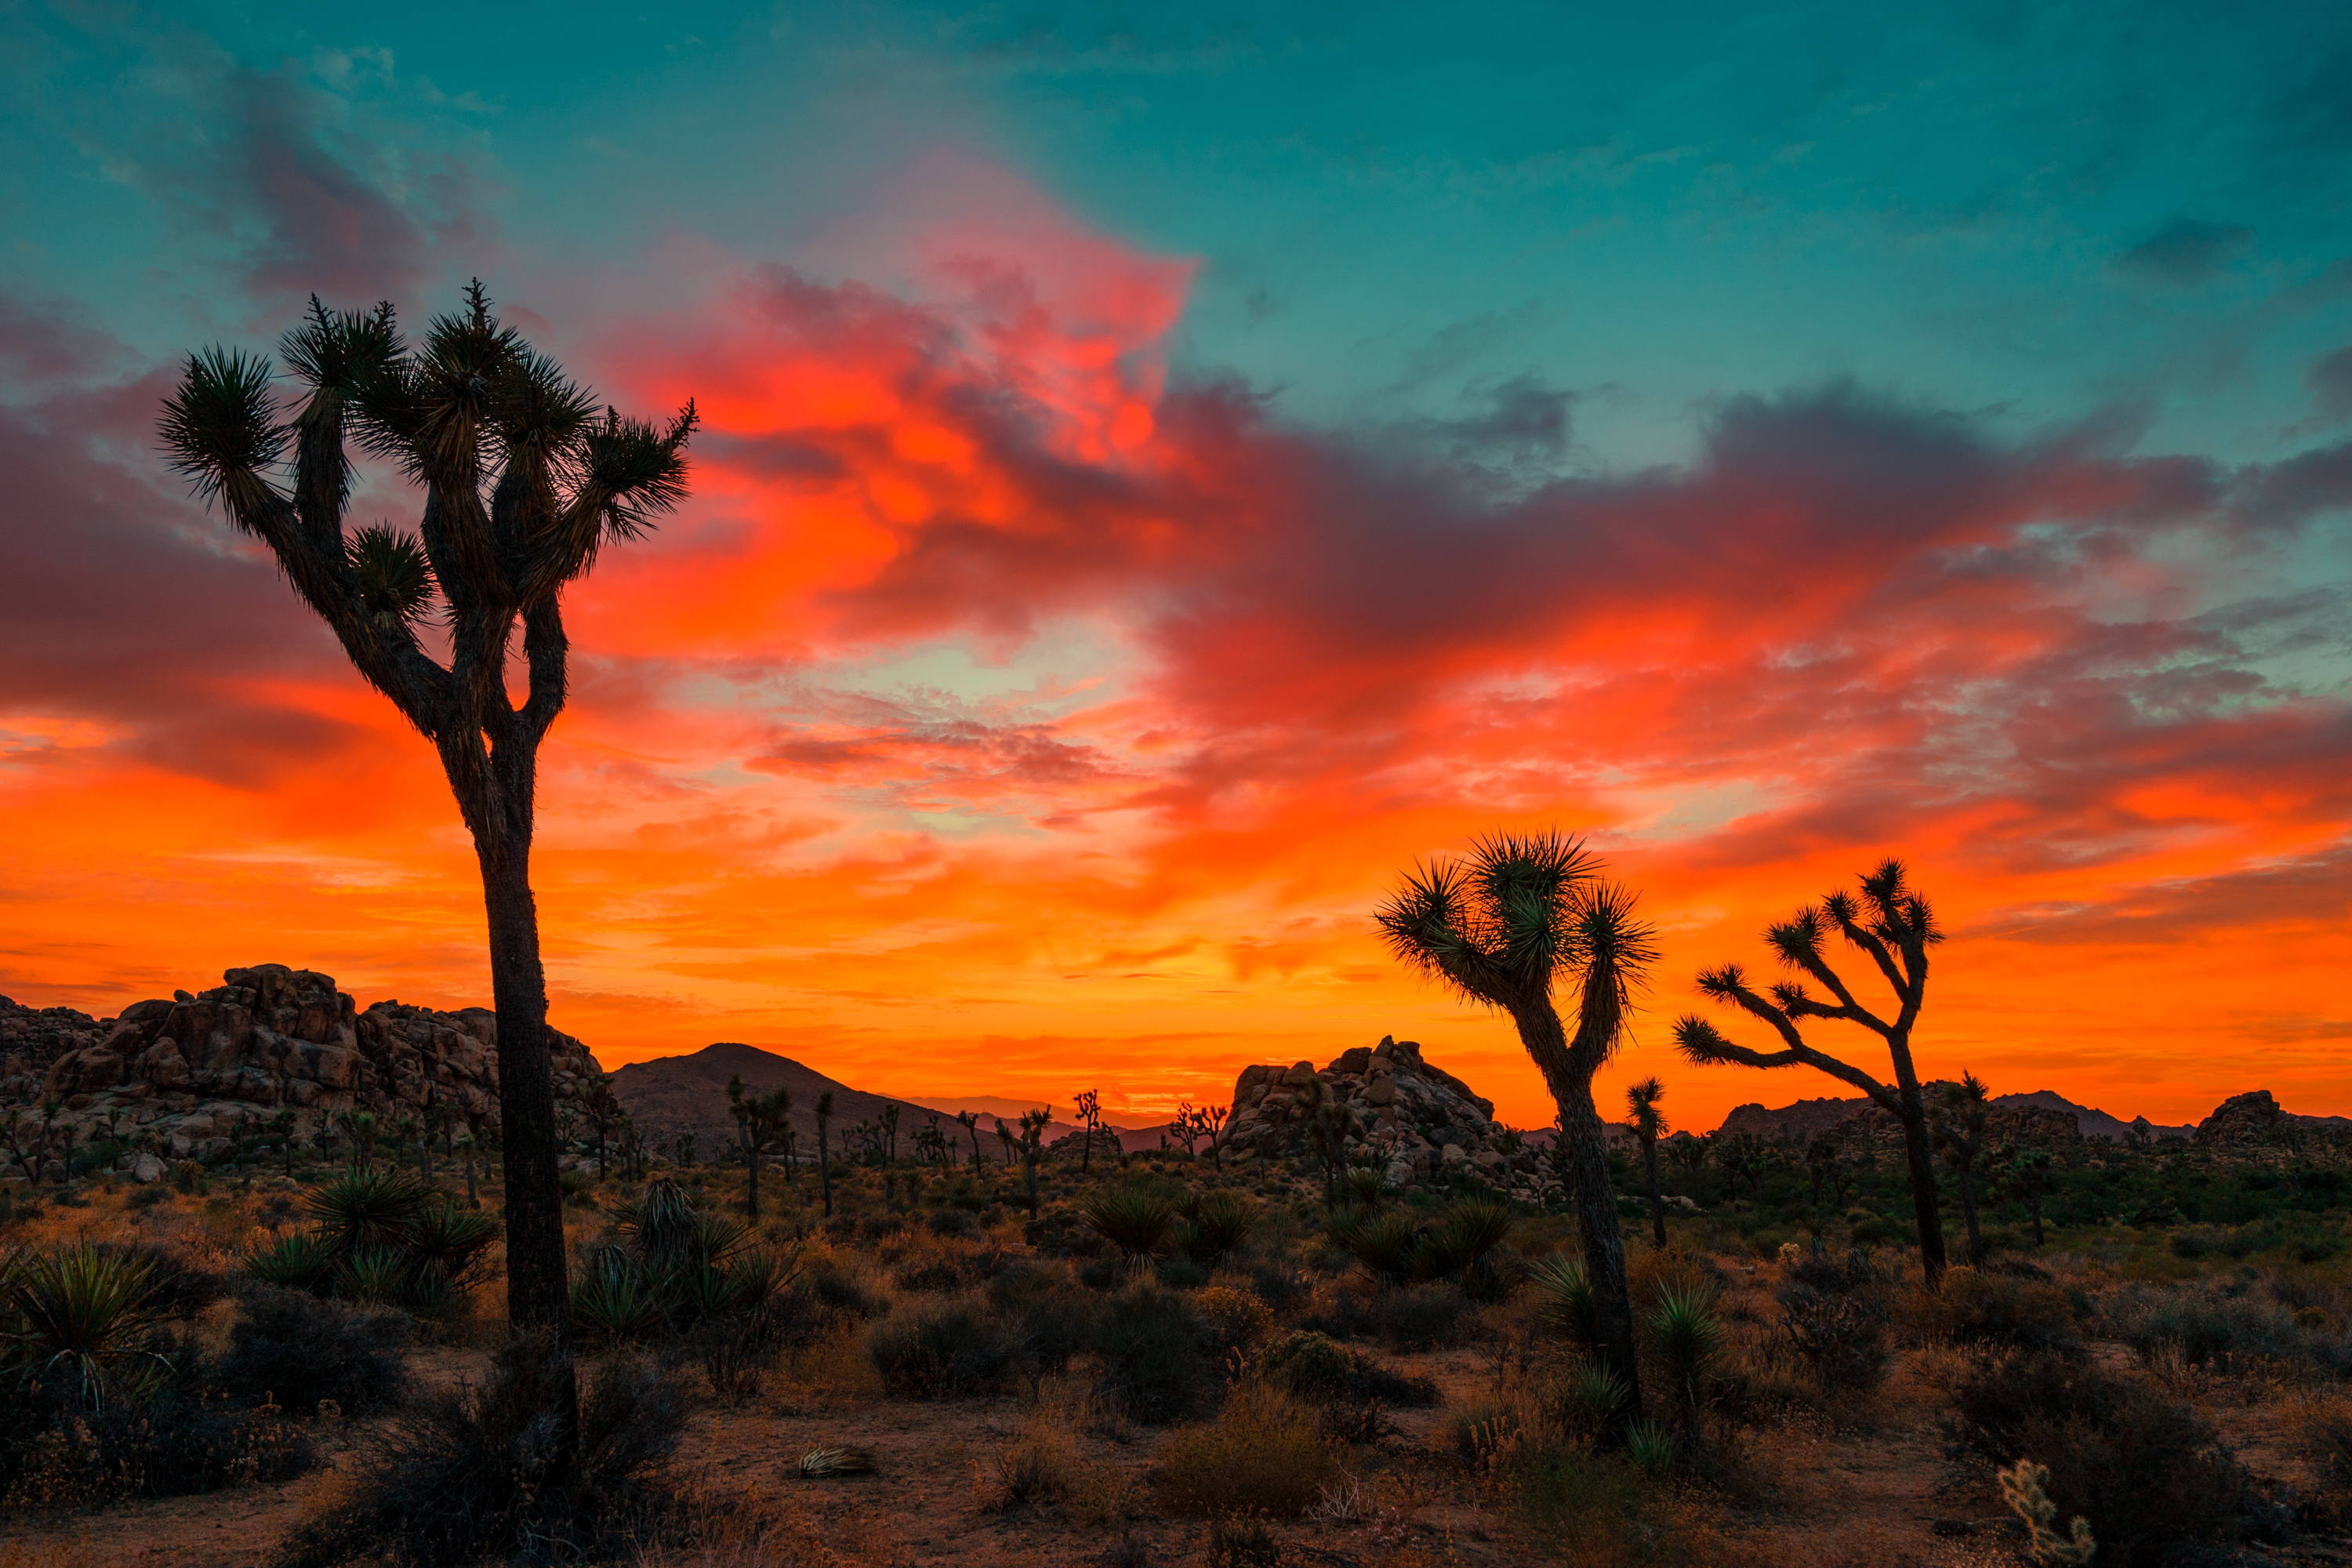 Best National Parks to Visit in Winter: Orange, red, and blue sky hovers over cacti in Joshua Tree National Park - one of the best national parks in California.